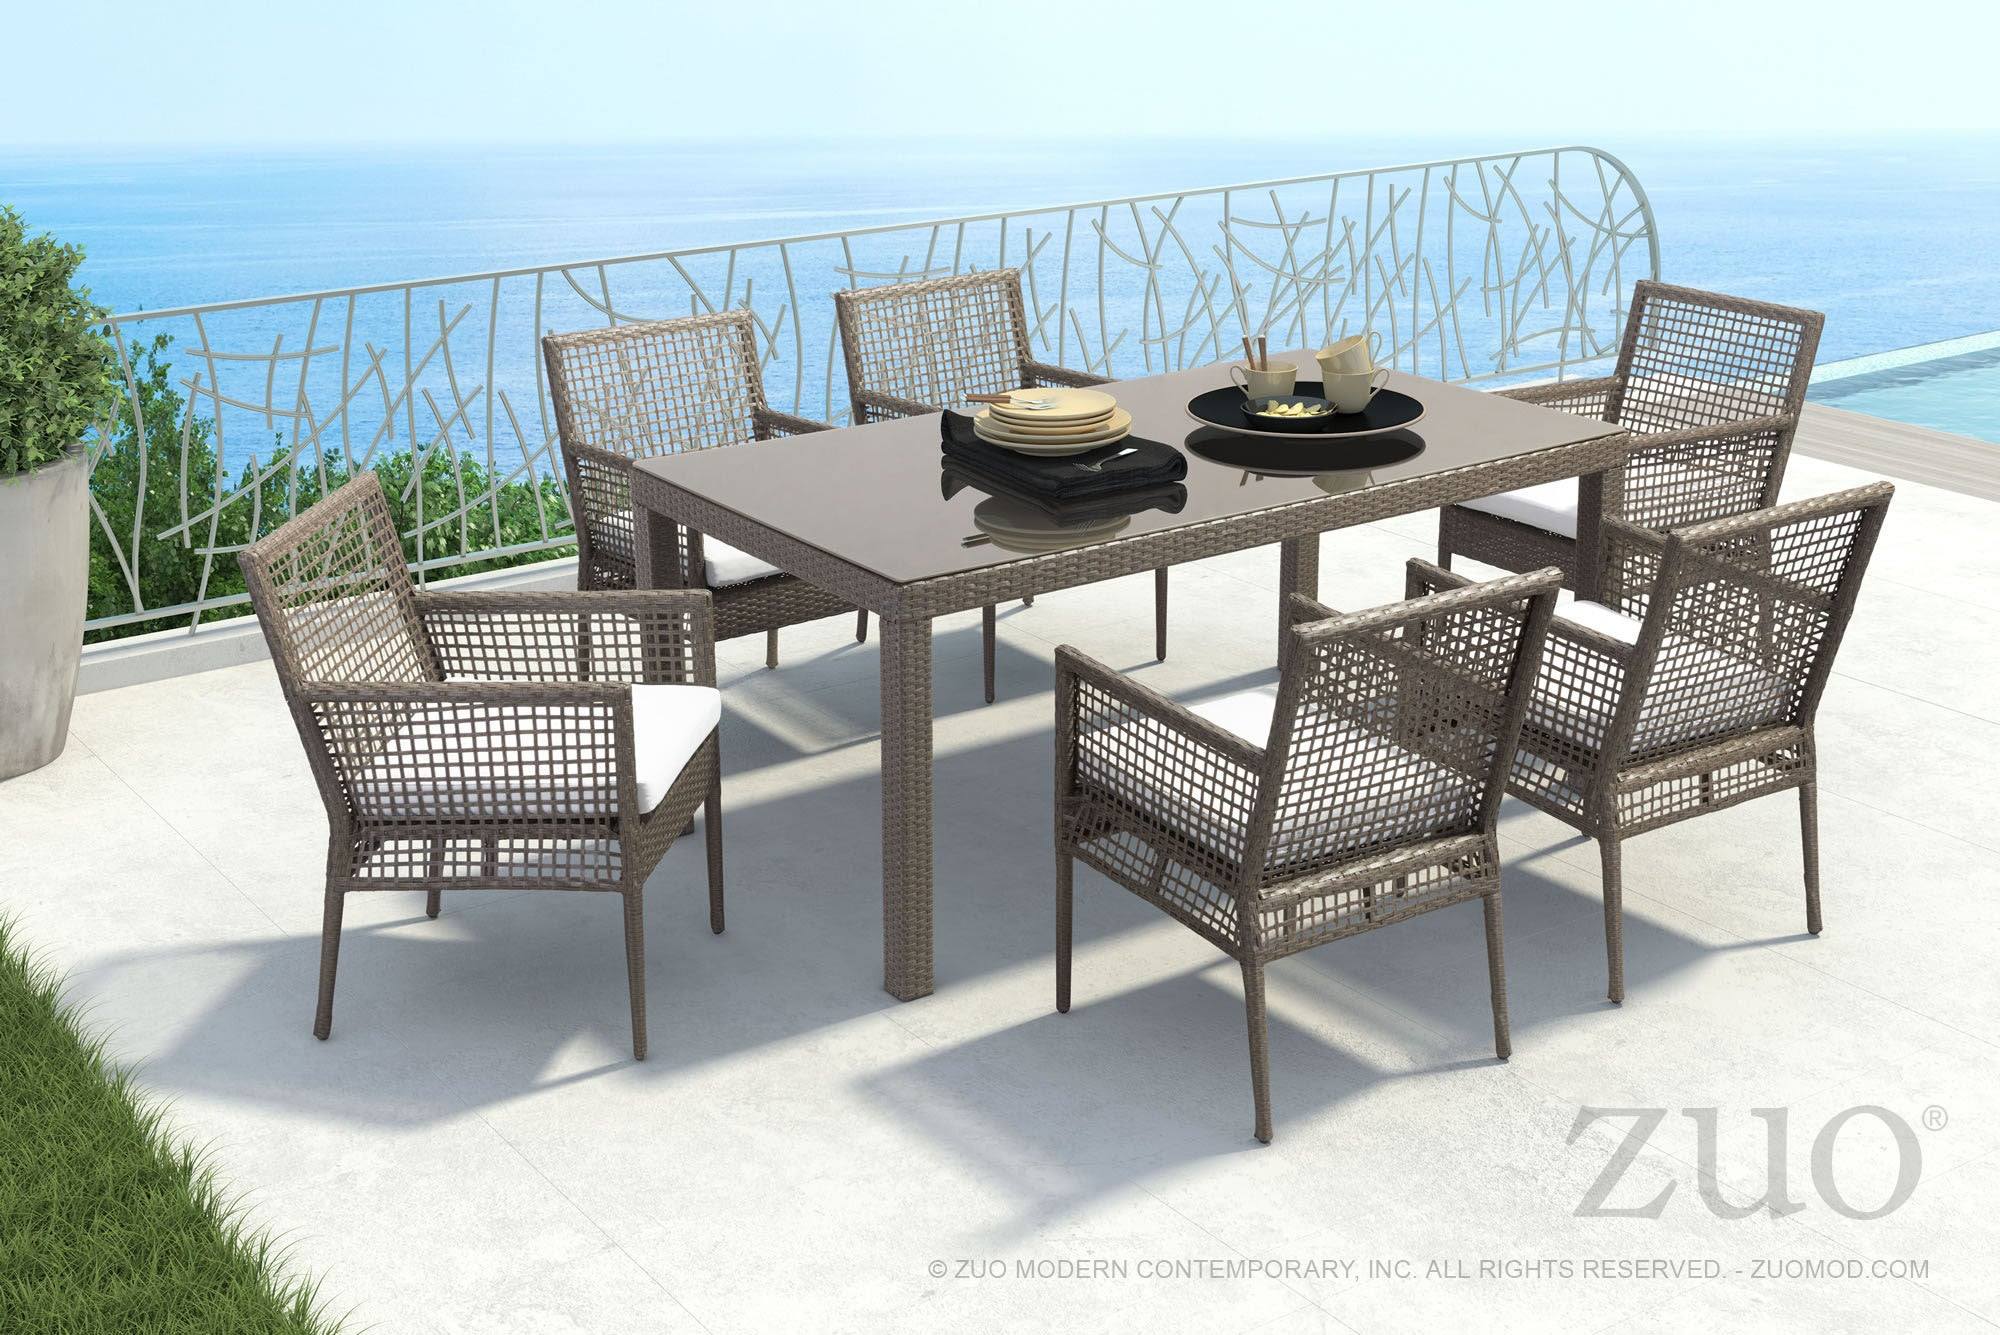 Coronado Patio Dining Chair in Woven Cocoa Resin & Light Gray Sunproof